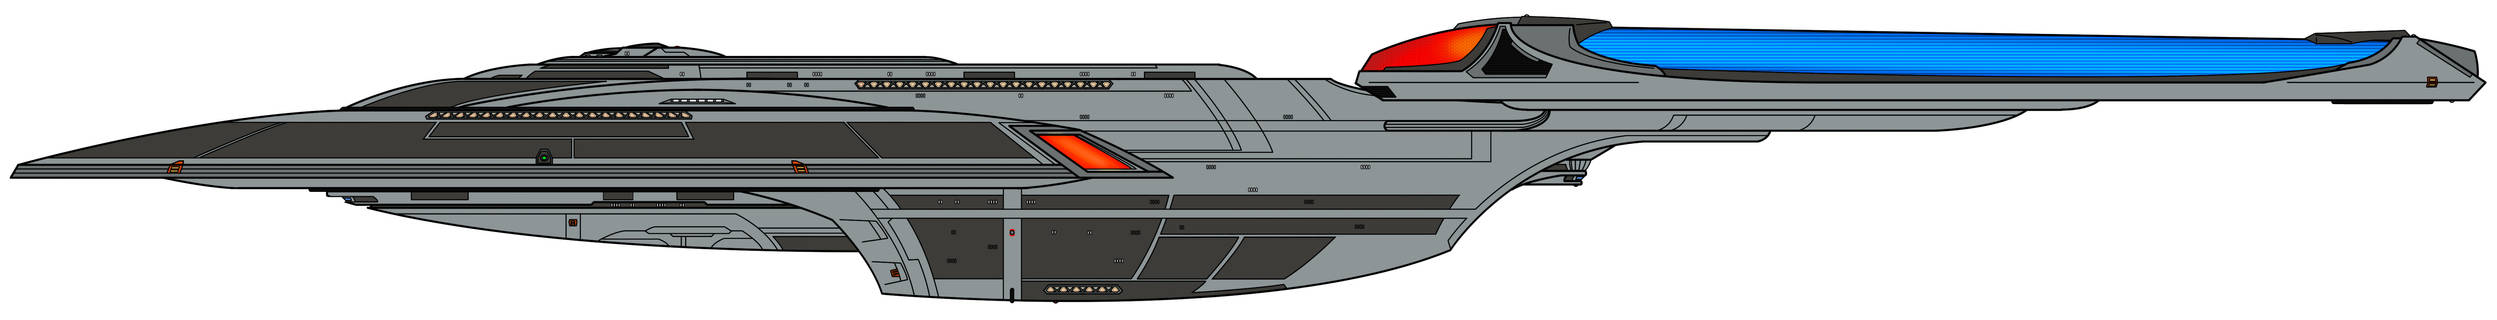 New-ship-side-flat-color